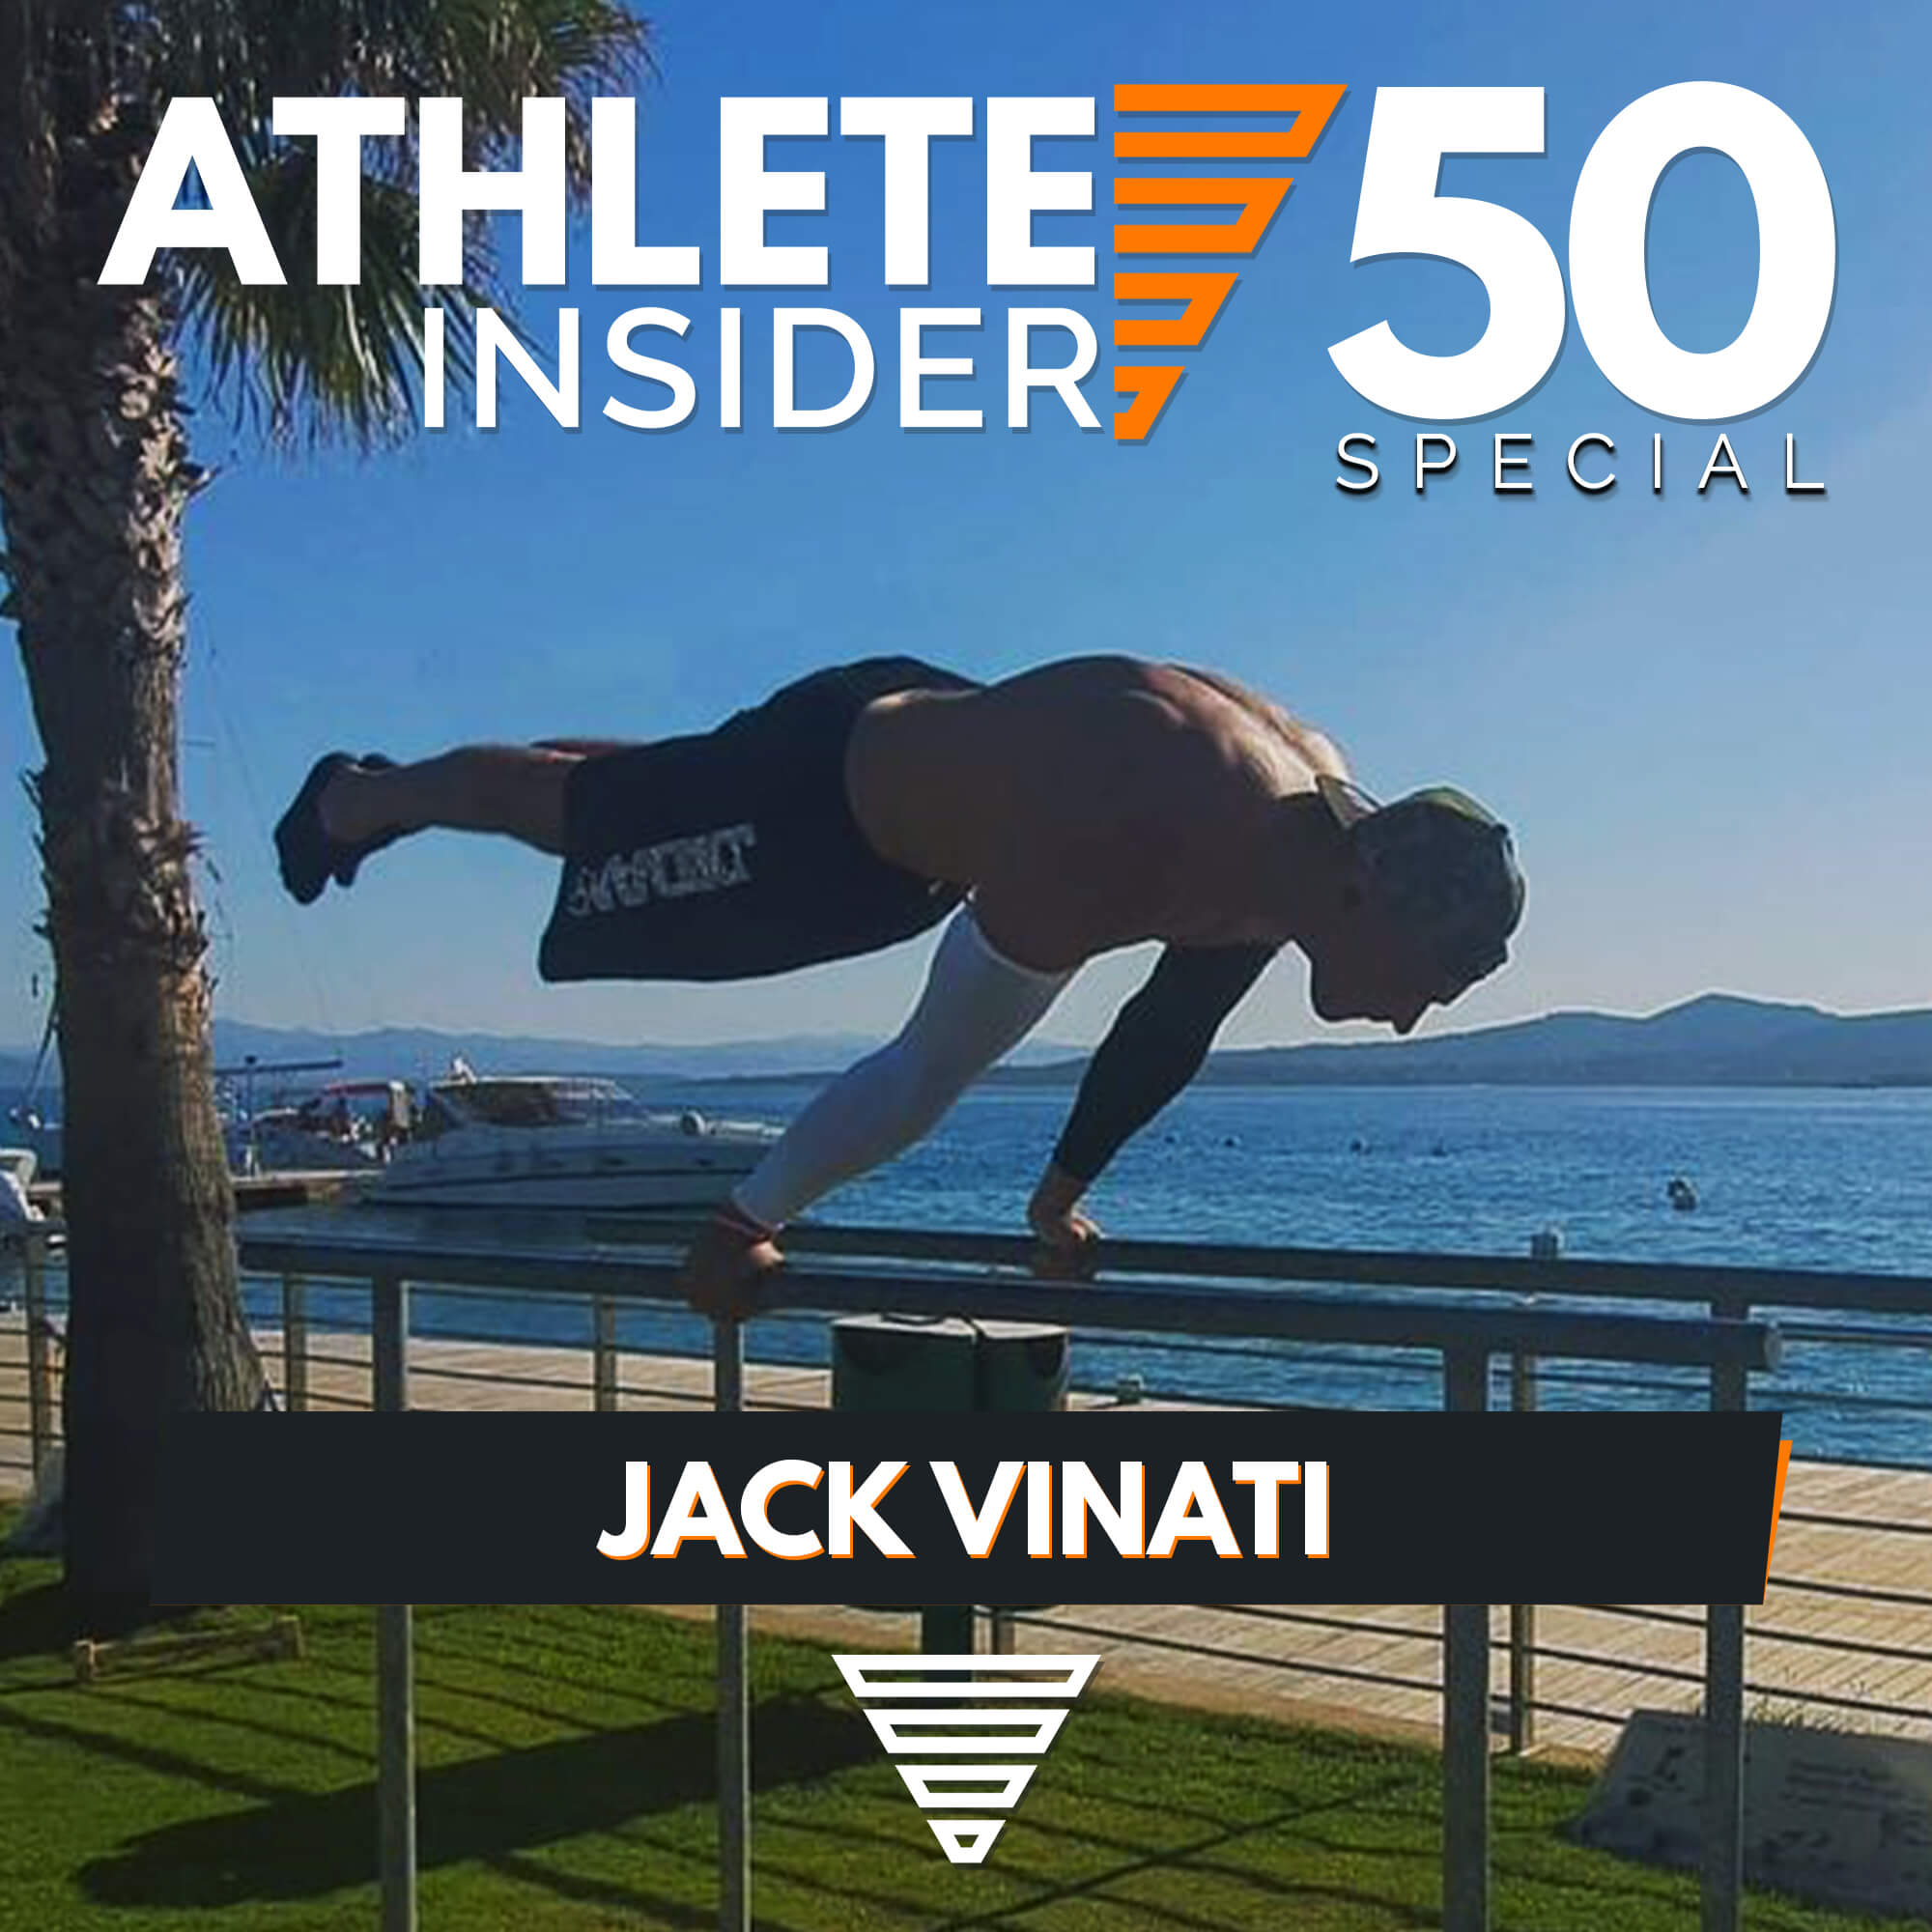 JACK VINATI | Full Planche with 202cm & 103kg | Interview | The Athlete Insider Podcast #50